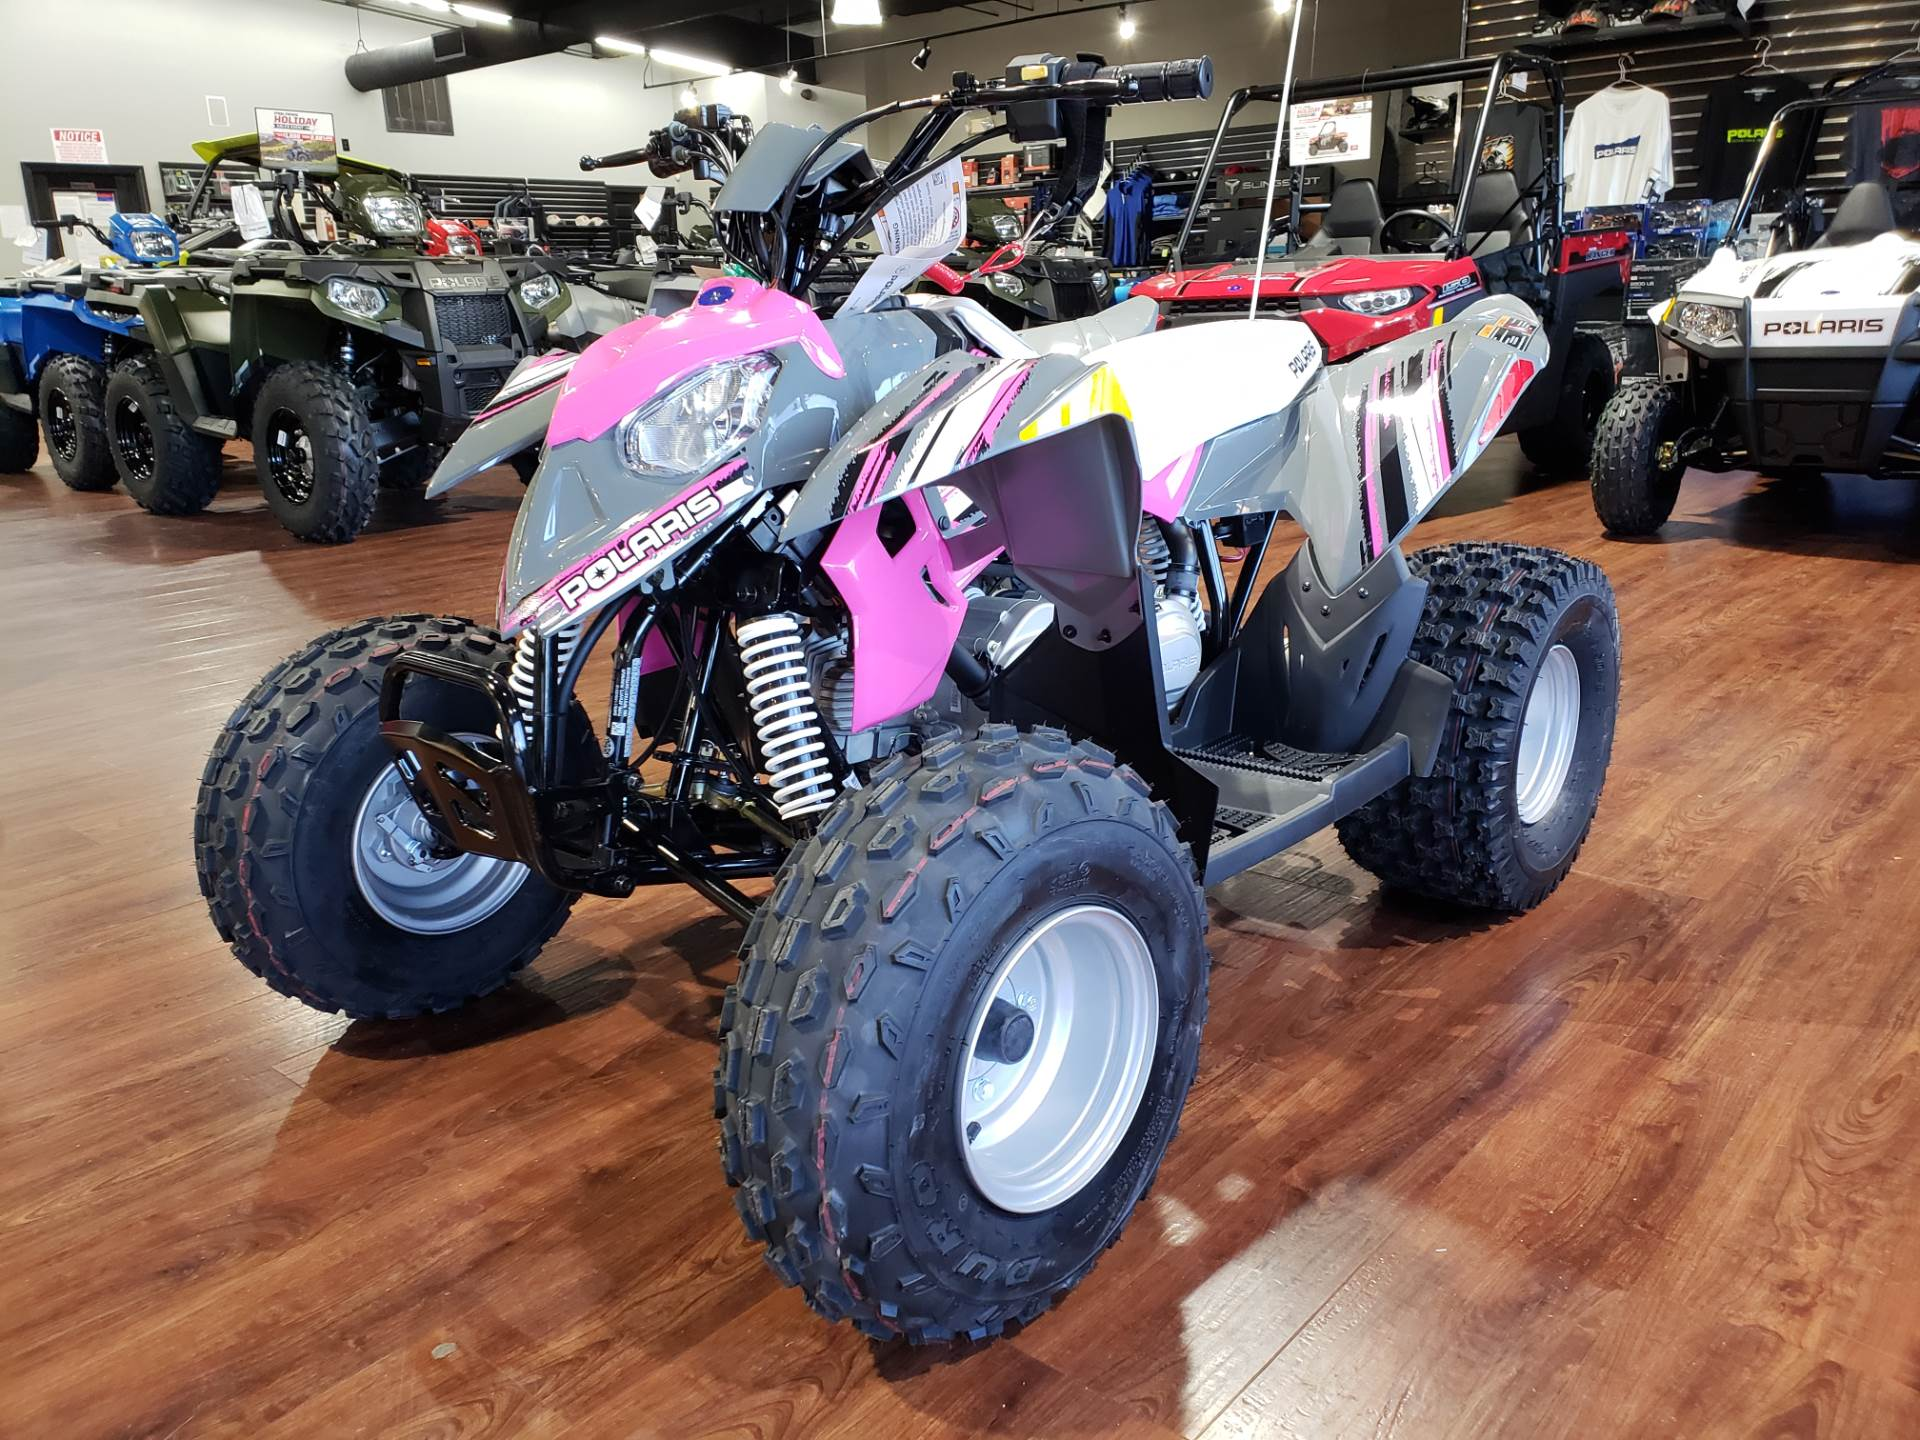 2019 Polaris Outlaw 110 in Greer, South Carolina